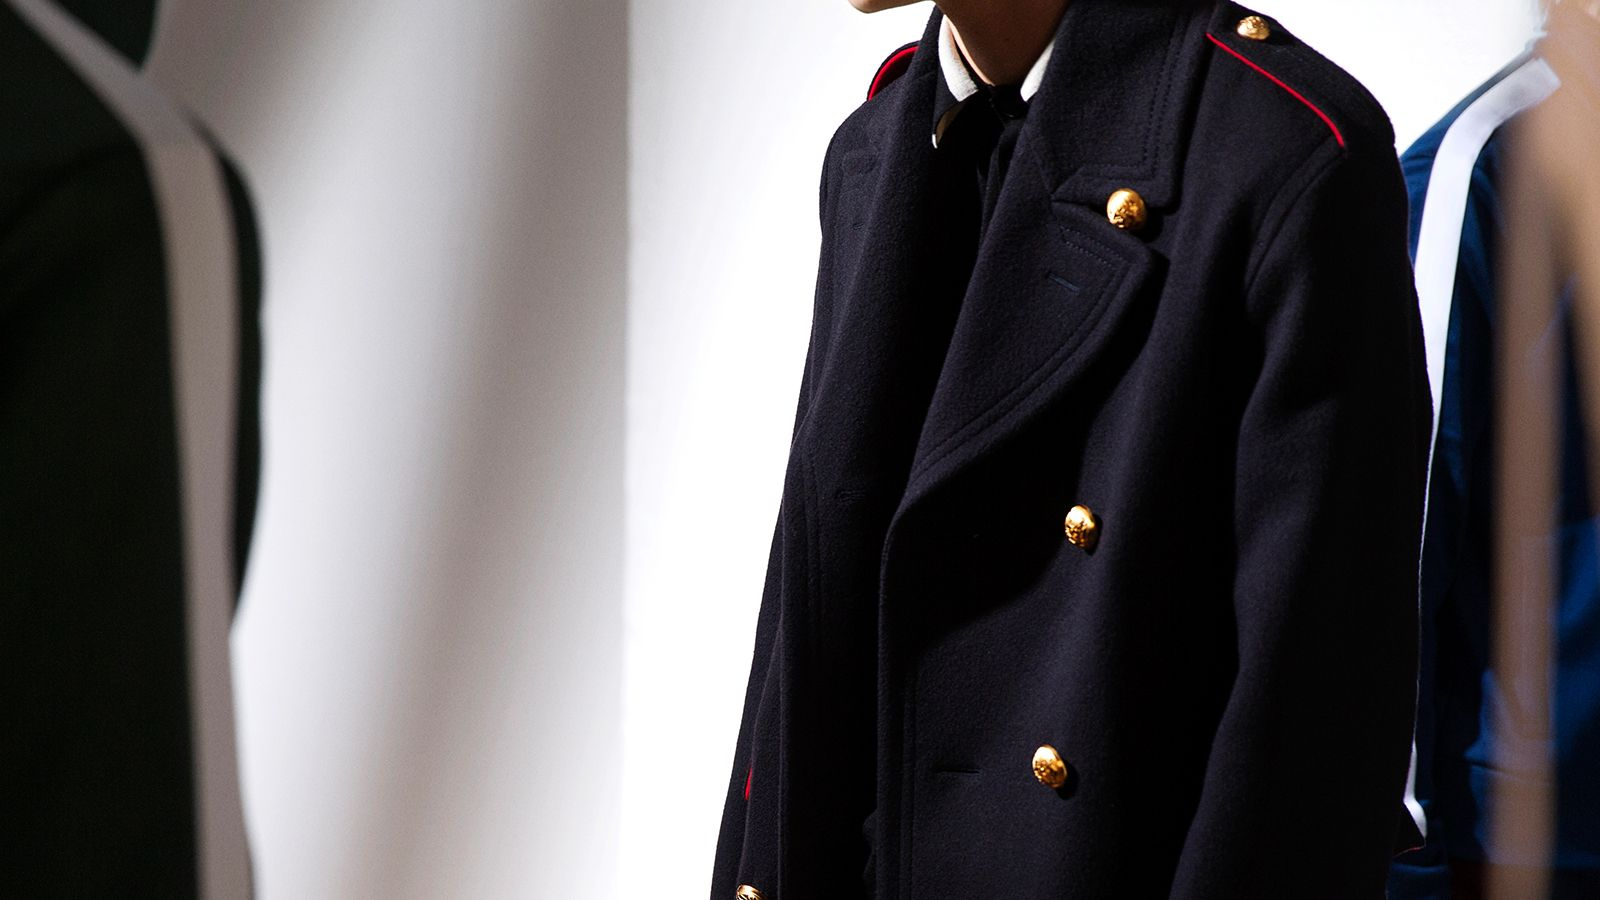 THE MILITARY TOPCOAT